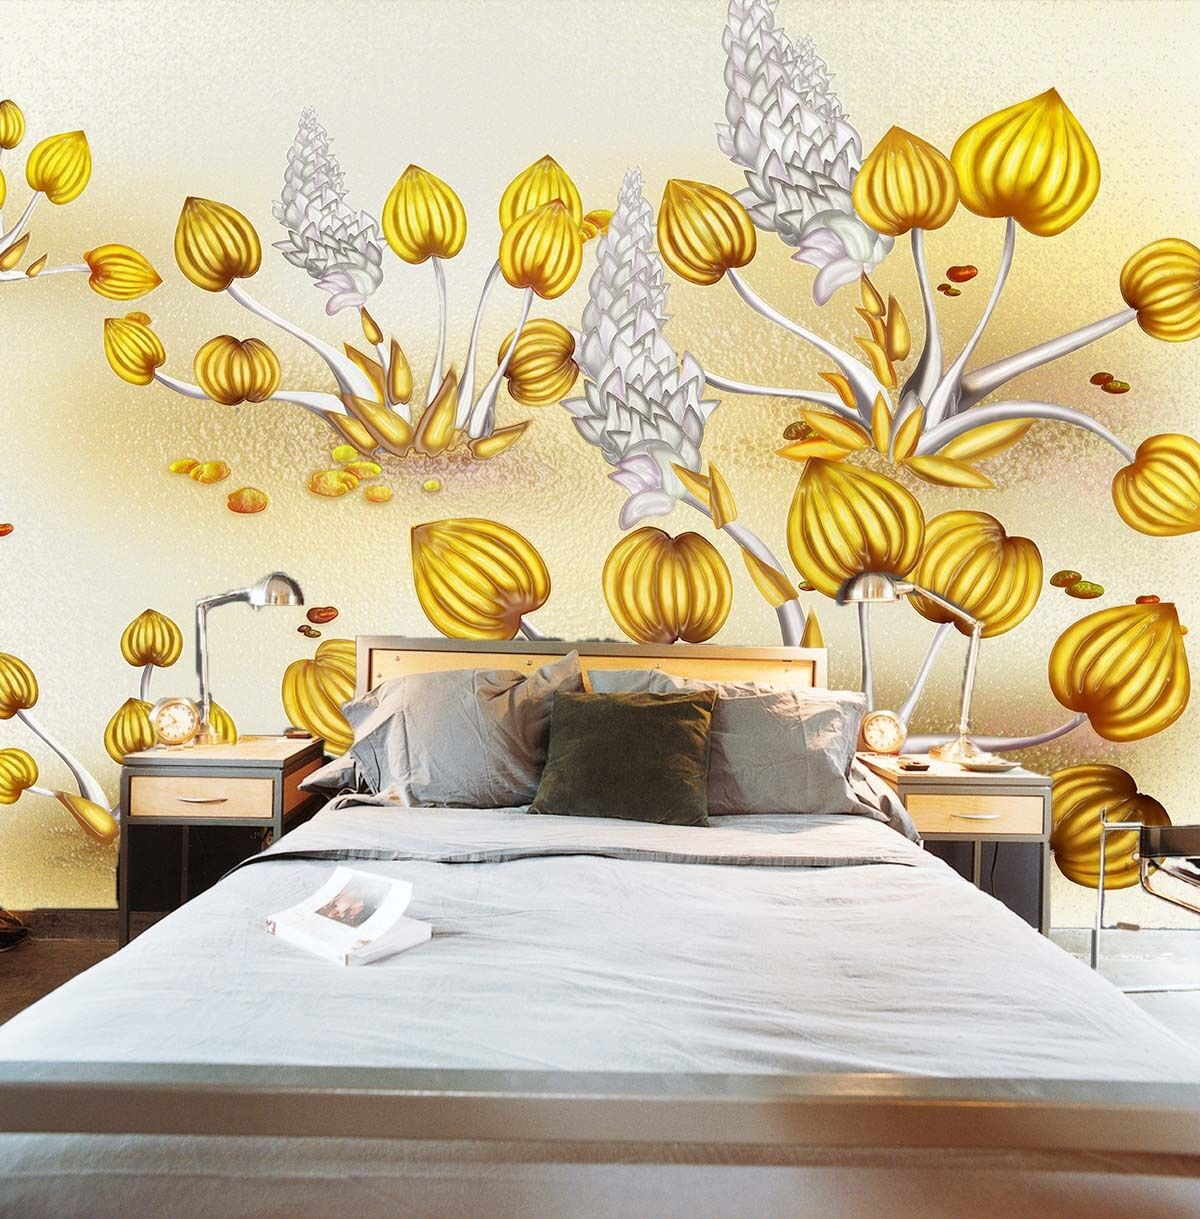 3D Golden Plants 618 WallPaper Murals Wall Print Decal Wall Deco AJ WALLPAPER